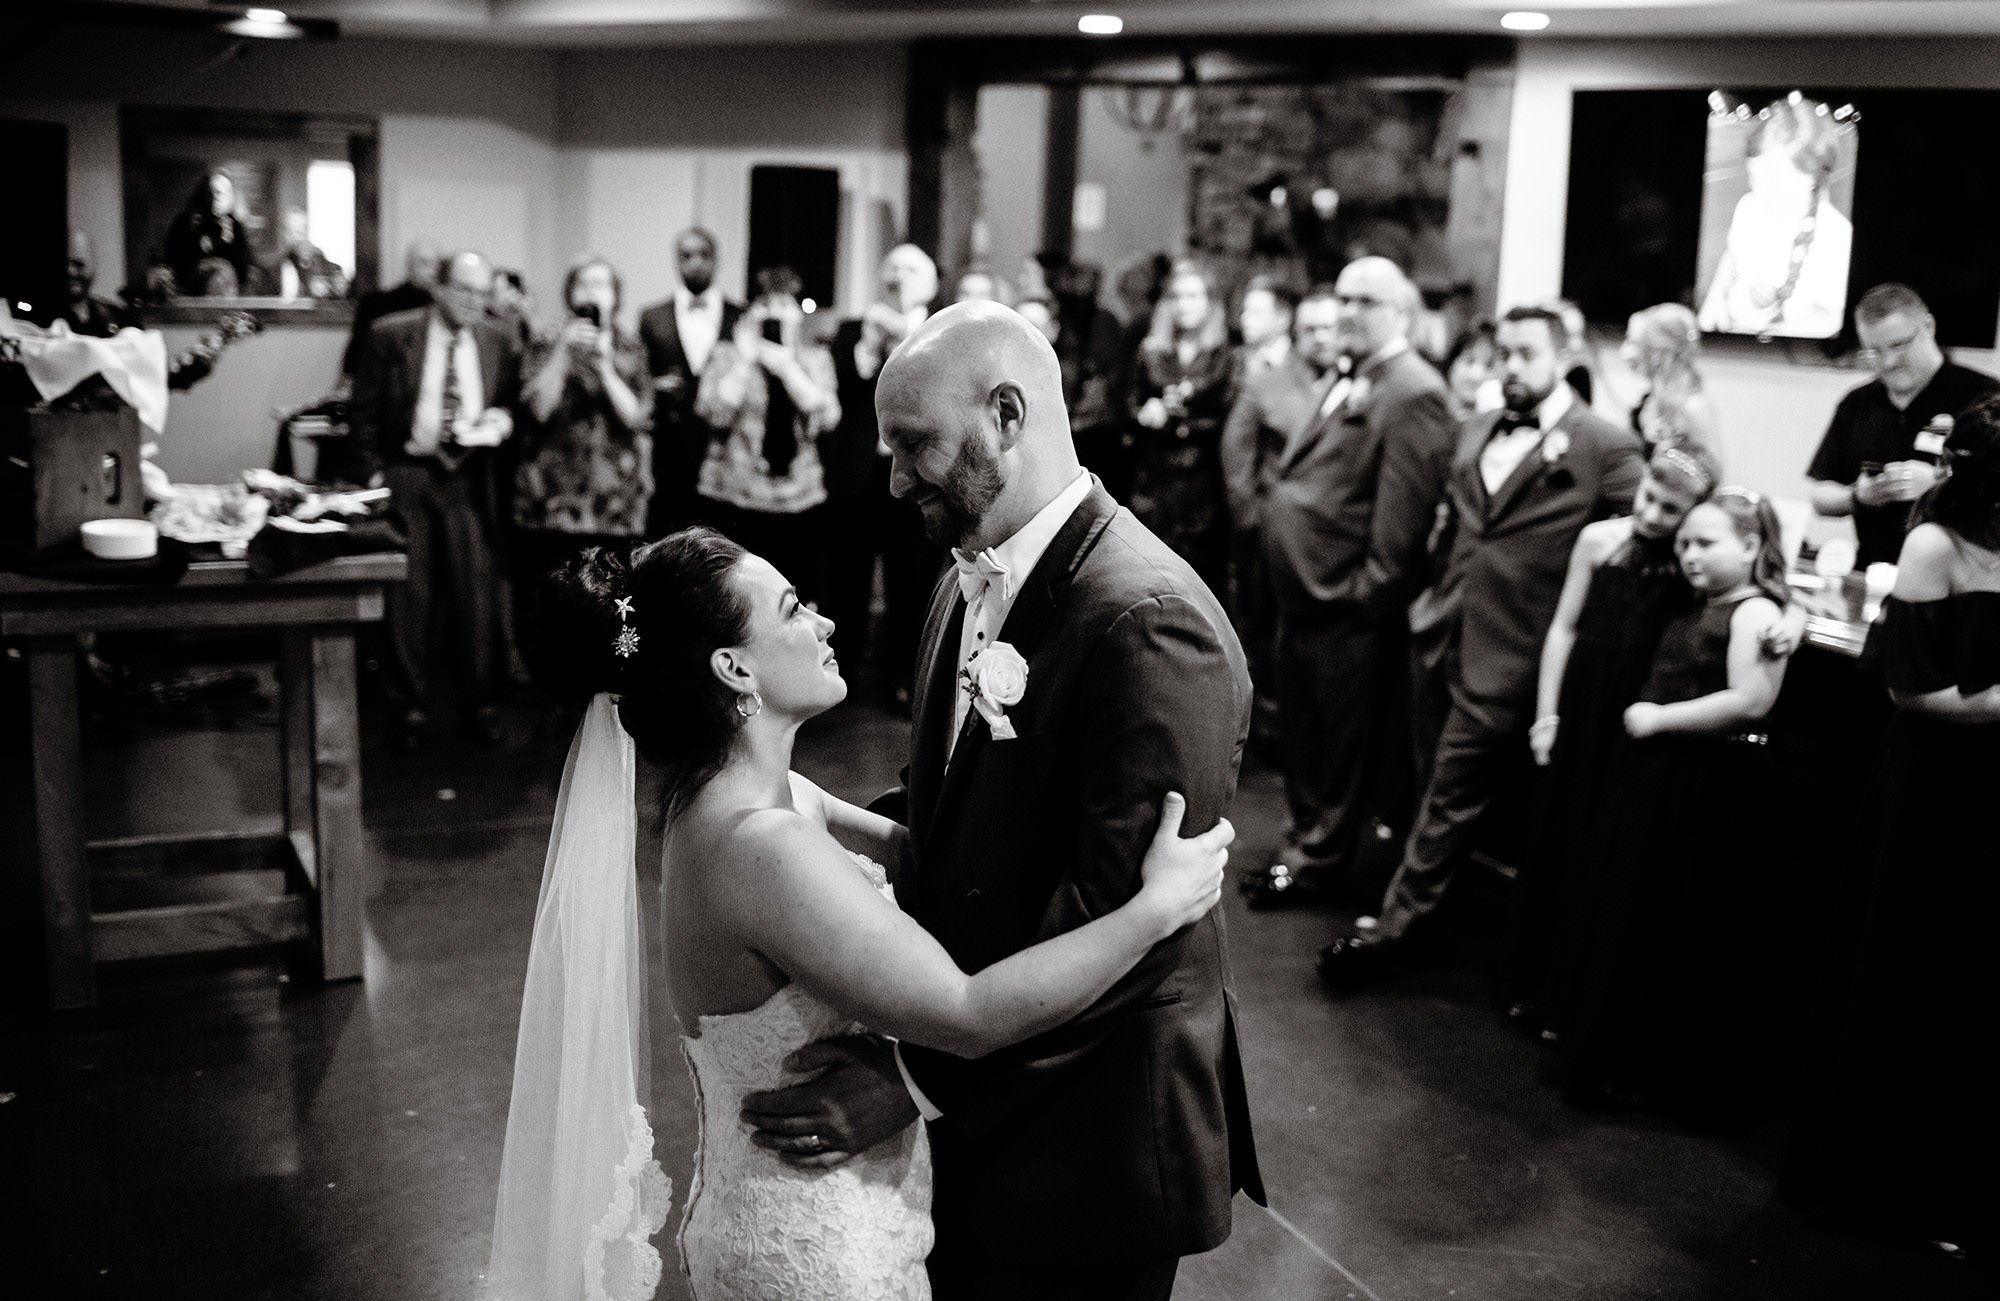 The couple share their first dance during the Silver Oak Mystic wedding reception.